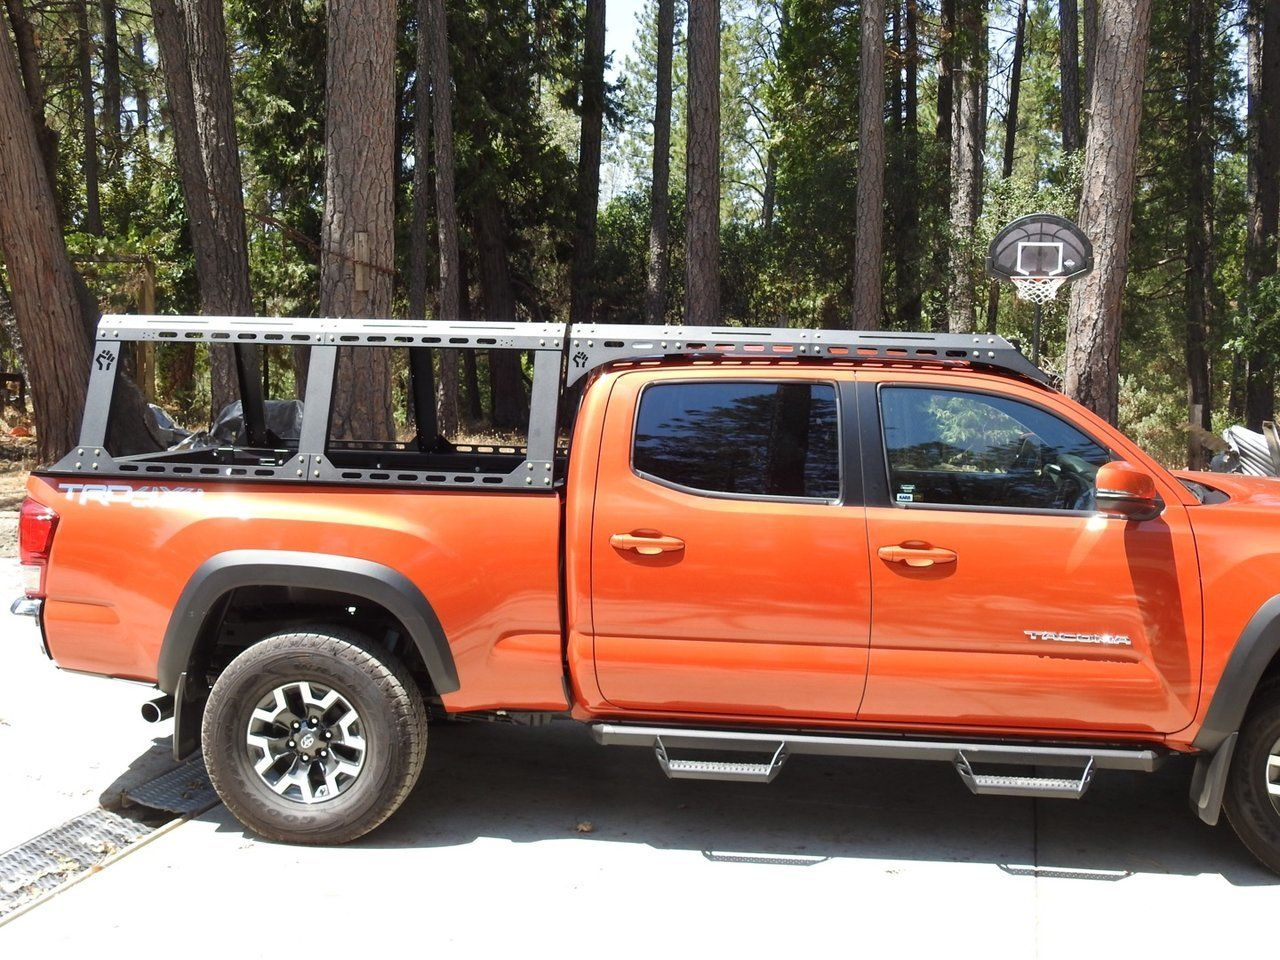 Dissent offroad aluminum rack system Truck accessories